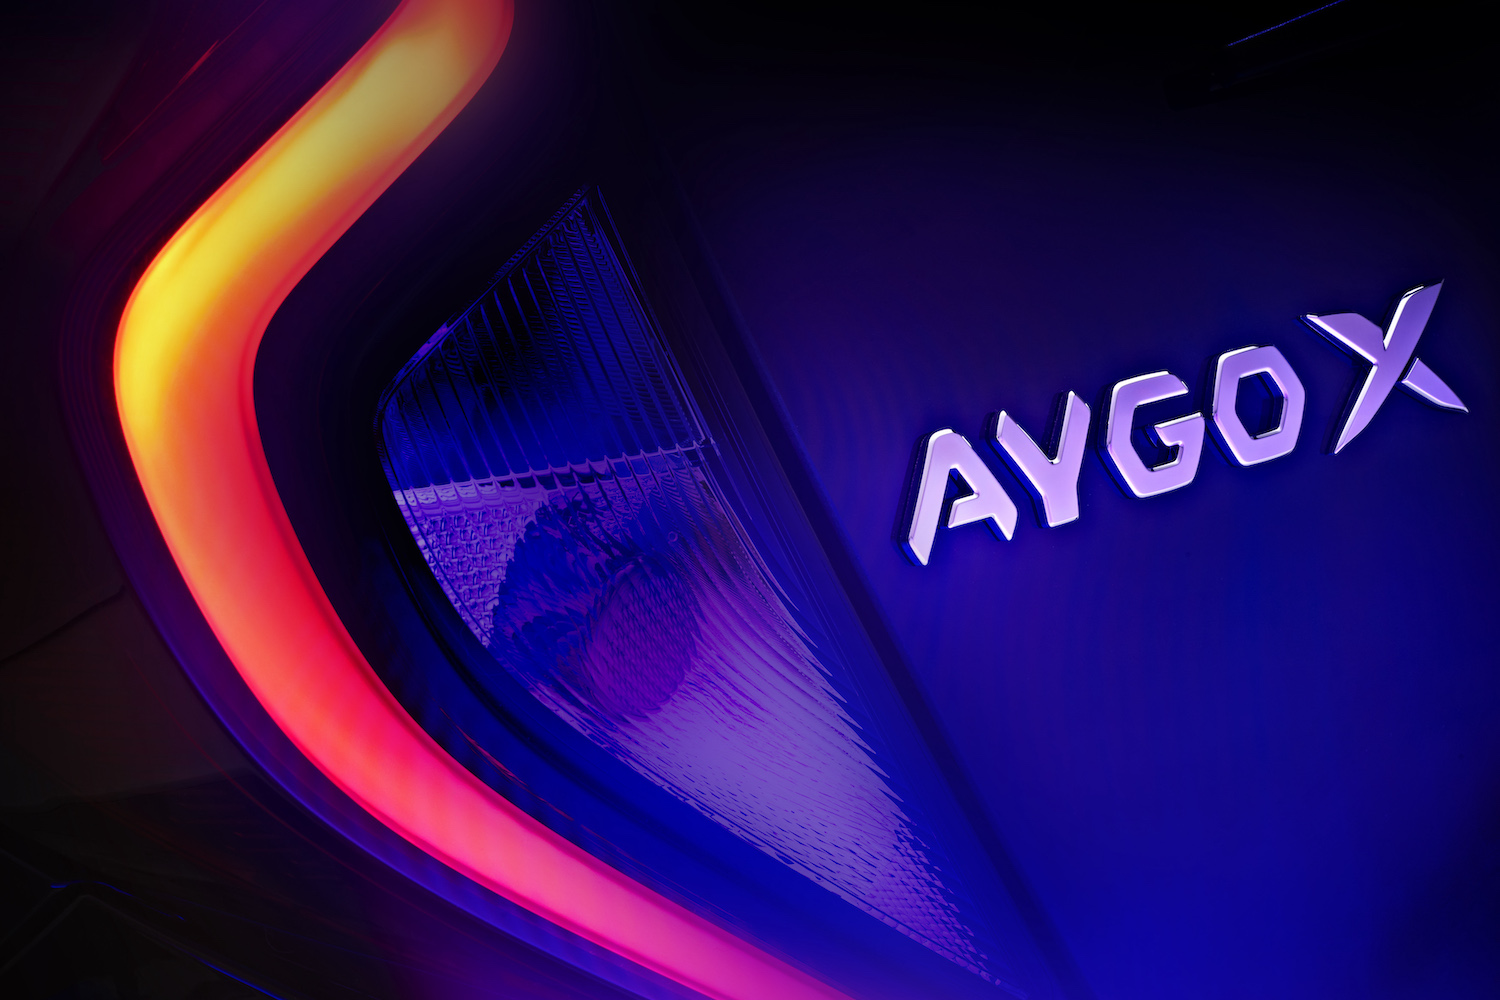 Car News   Toyota Aygo X confirmed for Ireland in 2022   CompleteCar.ie